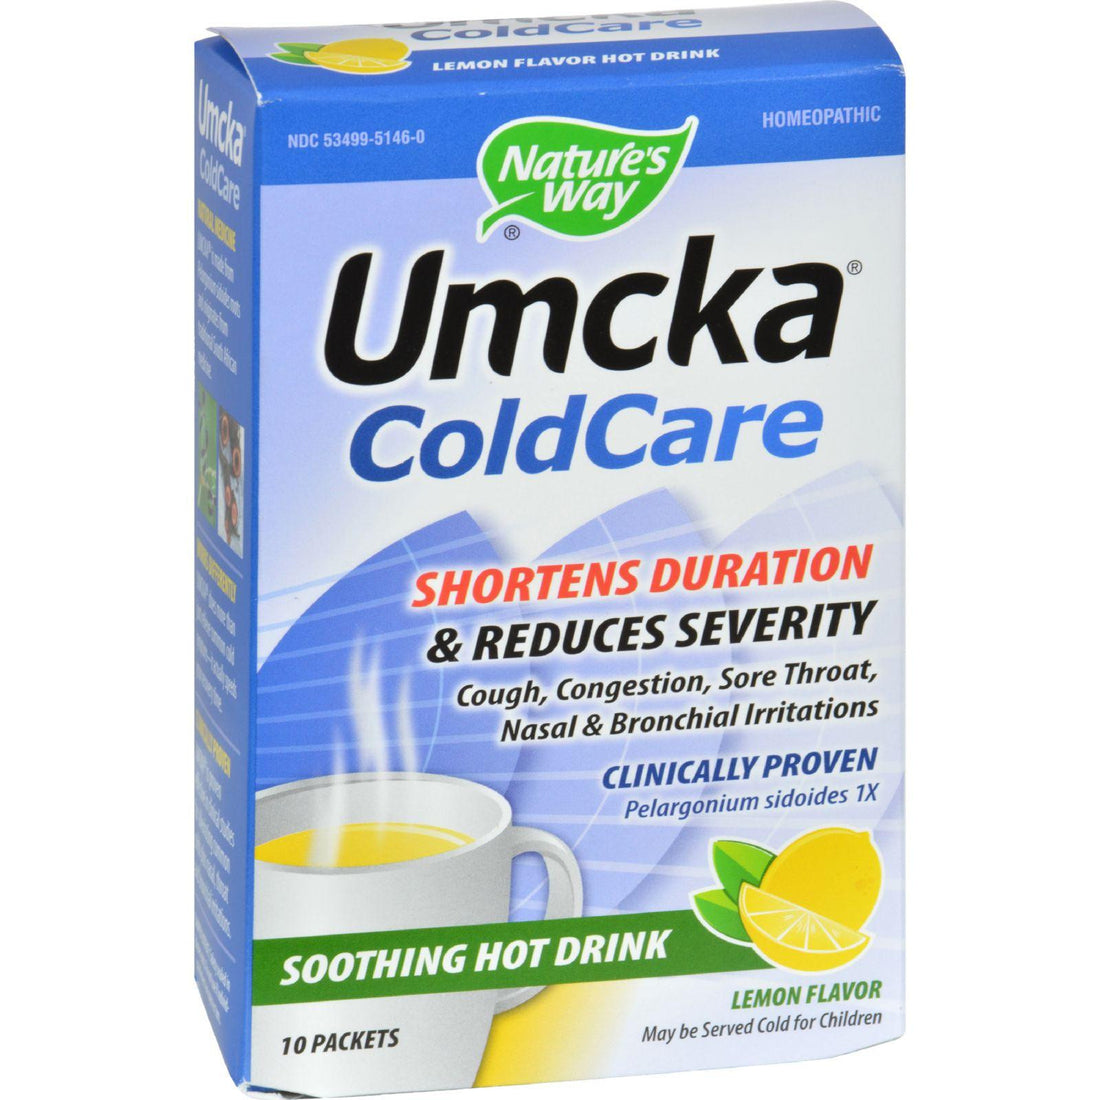 Mother Mantis: Nature's Way Umcka Coldcare Soothing Hot Drink Lemon - 10 Packets Nature's Way